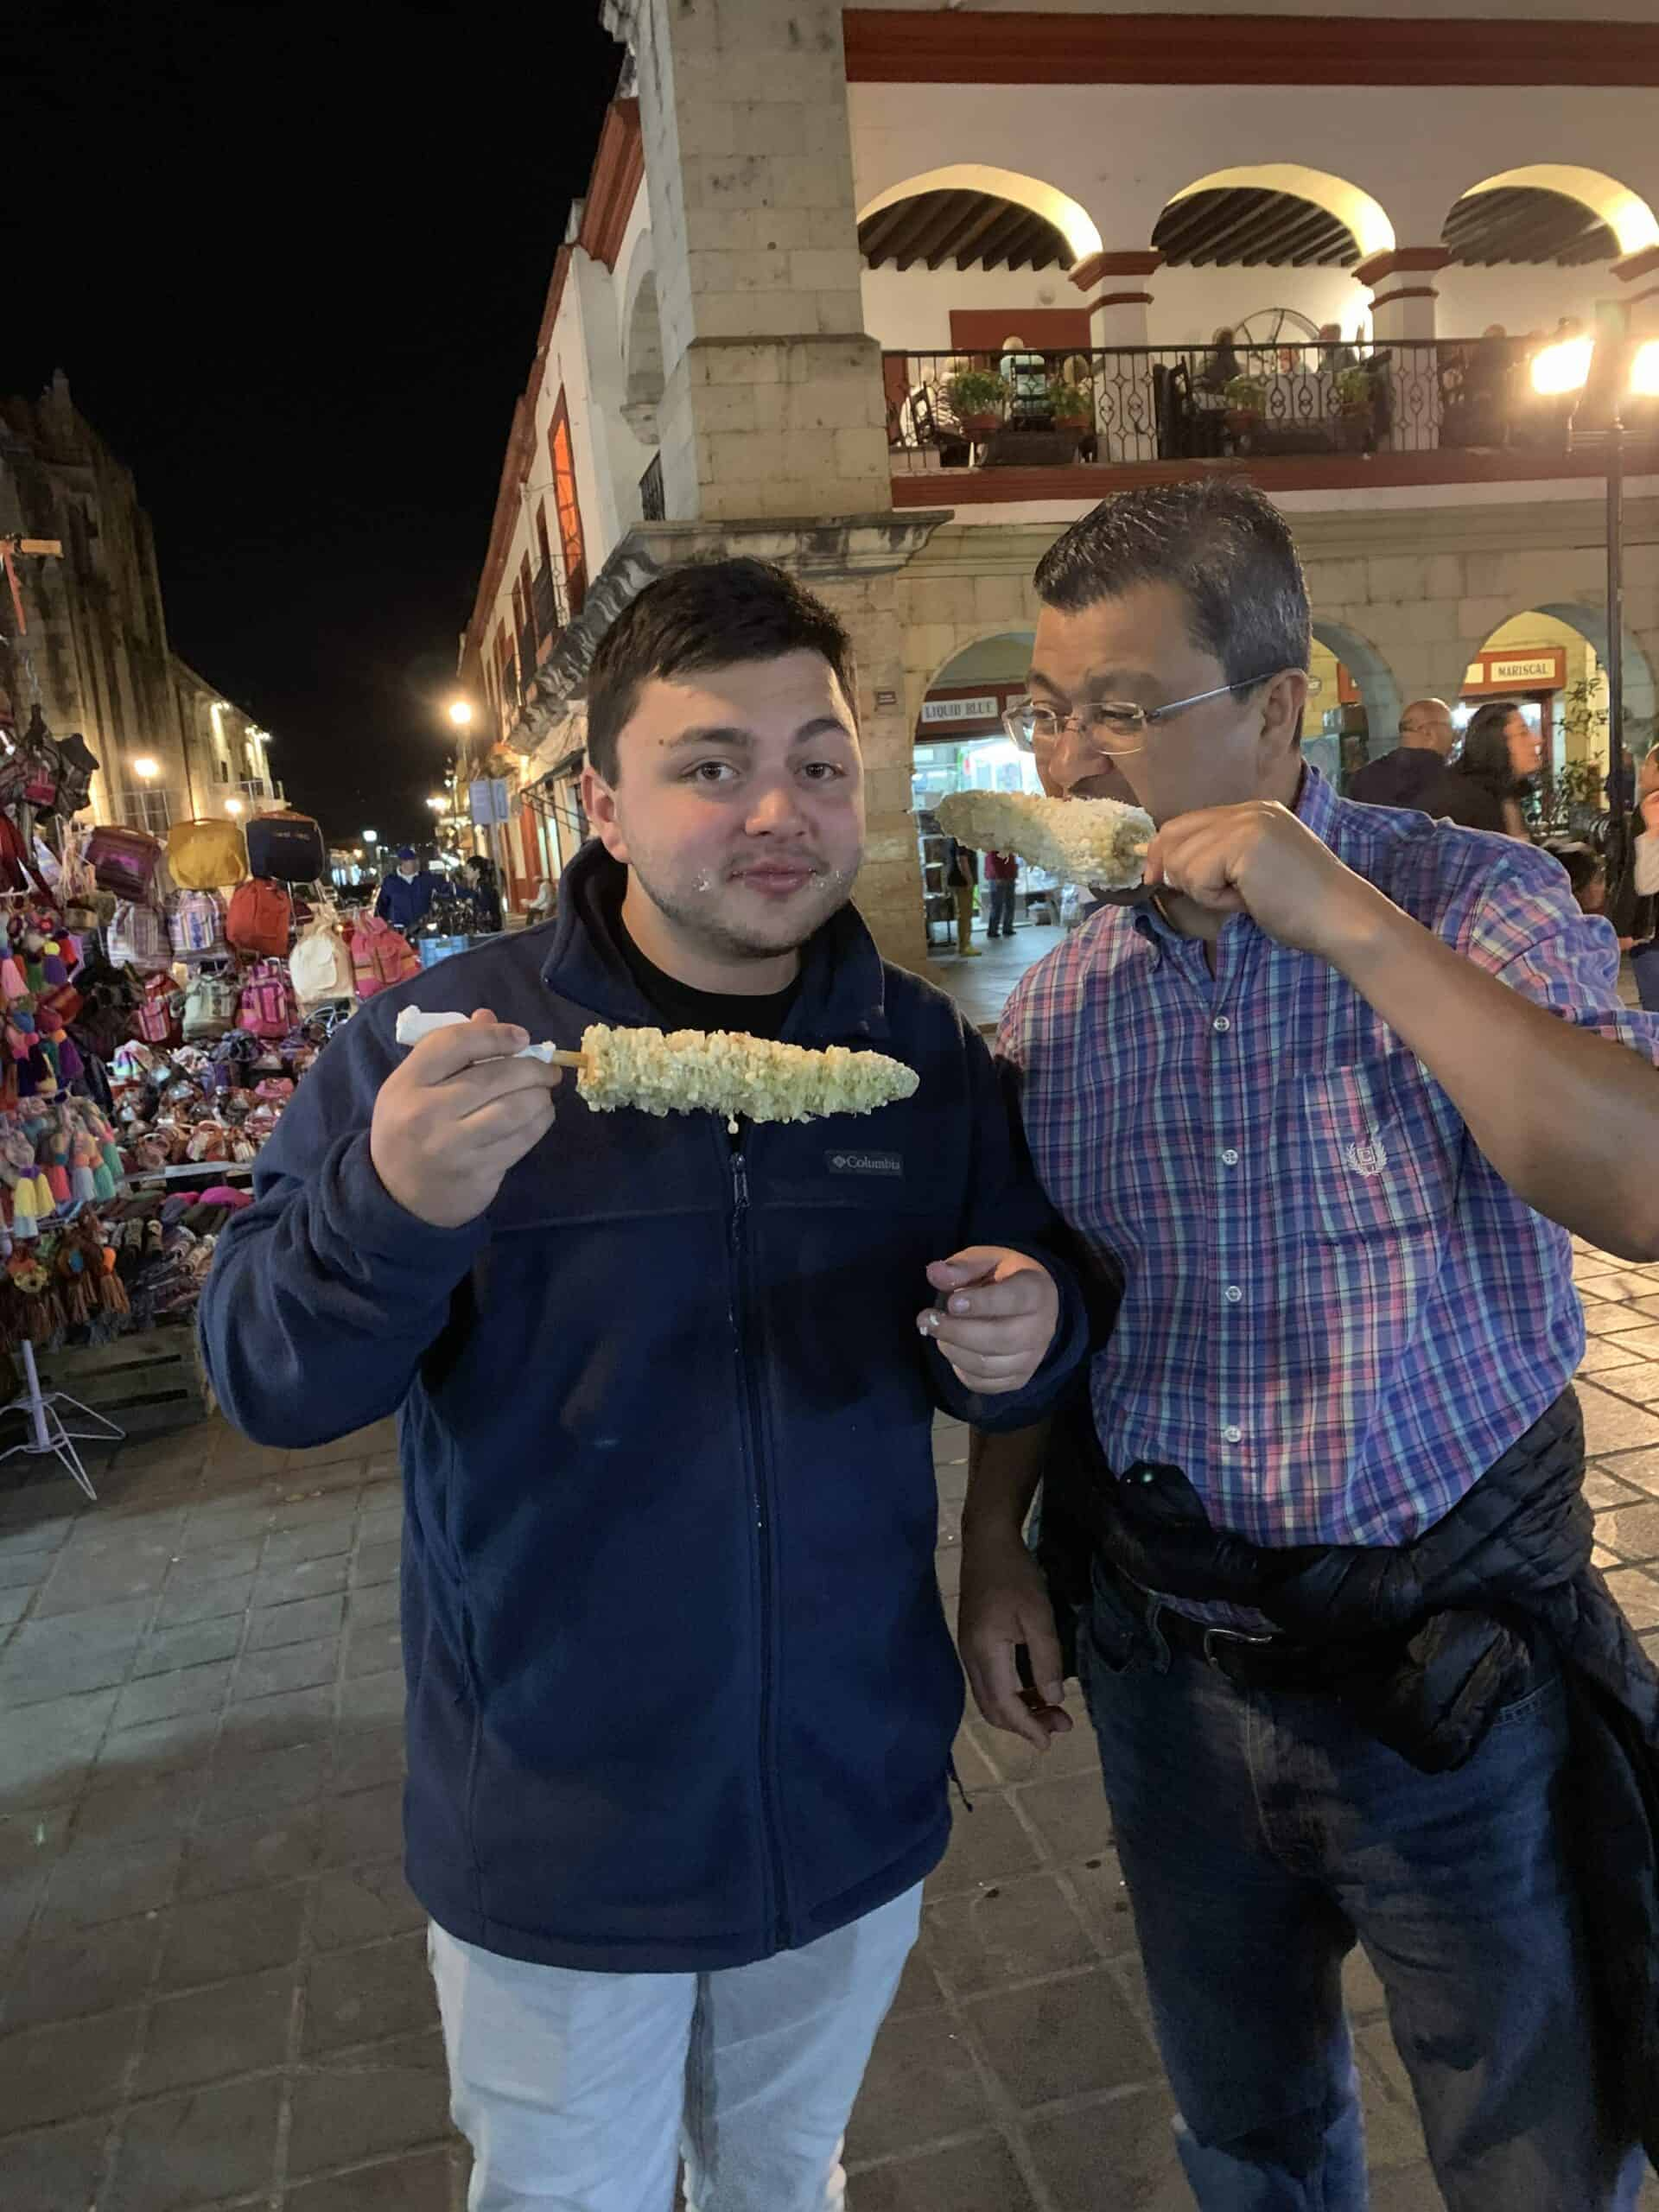 Miguel Osorio and son eating elote in Mexico.